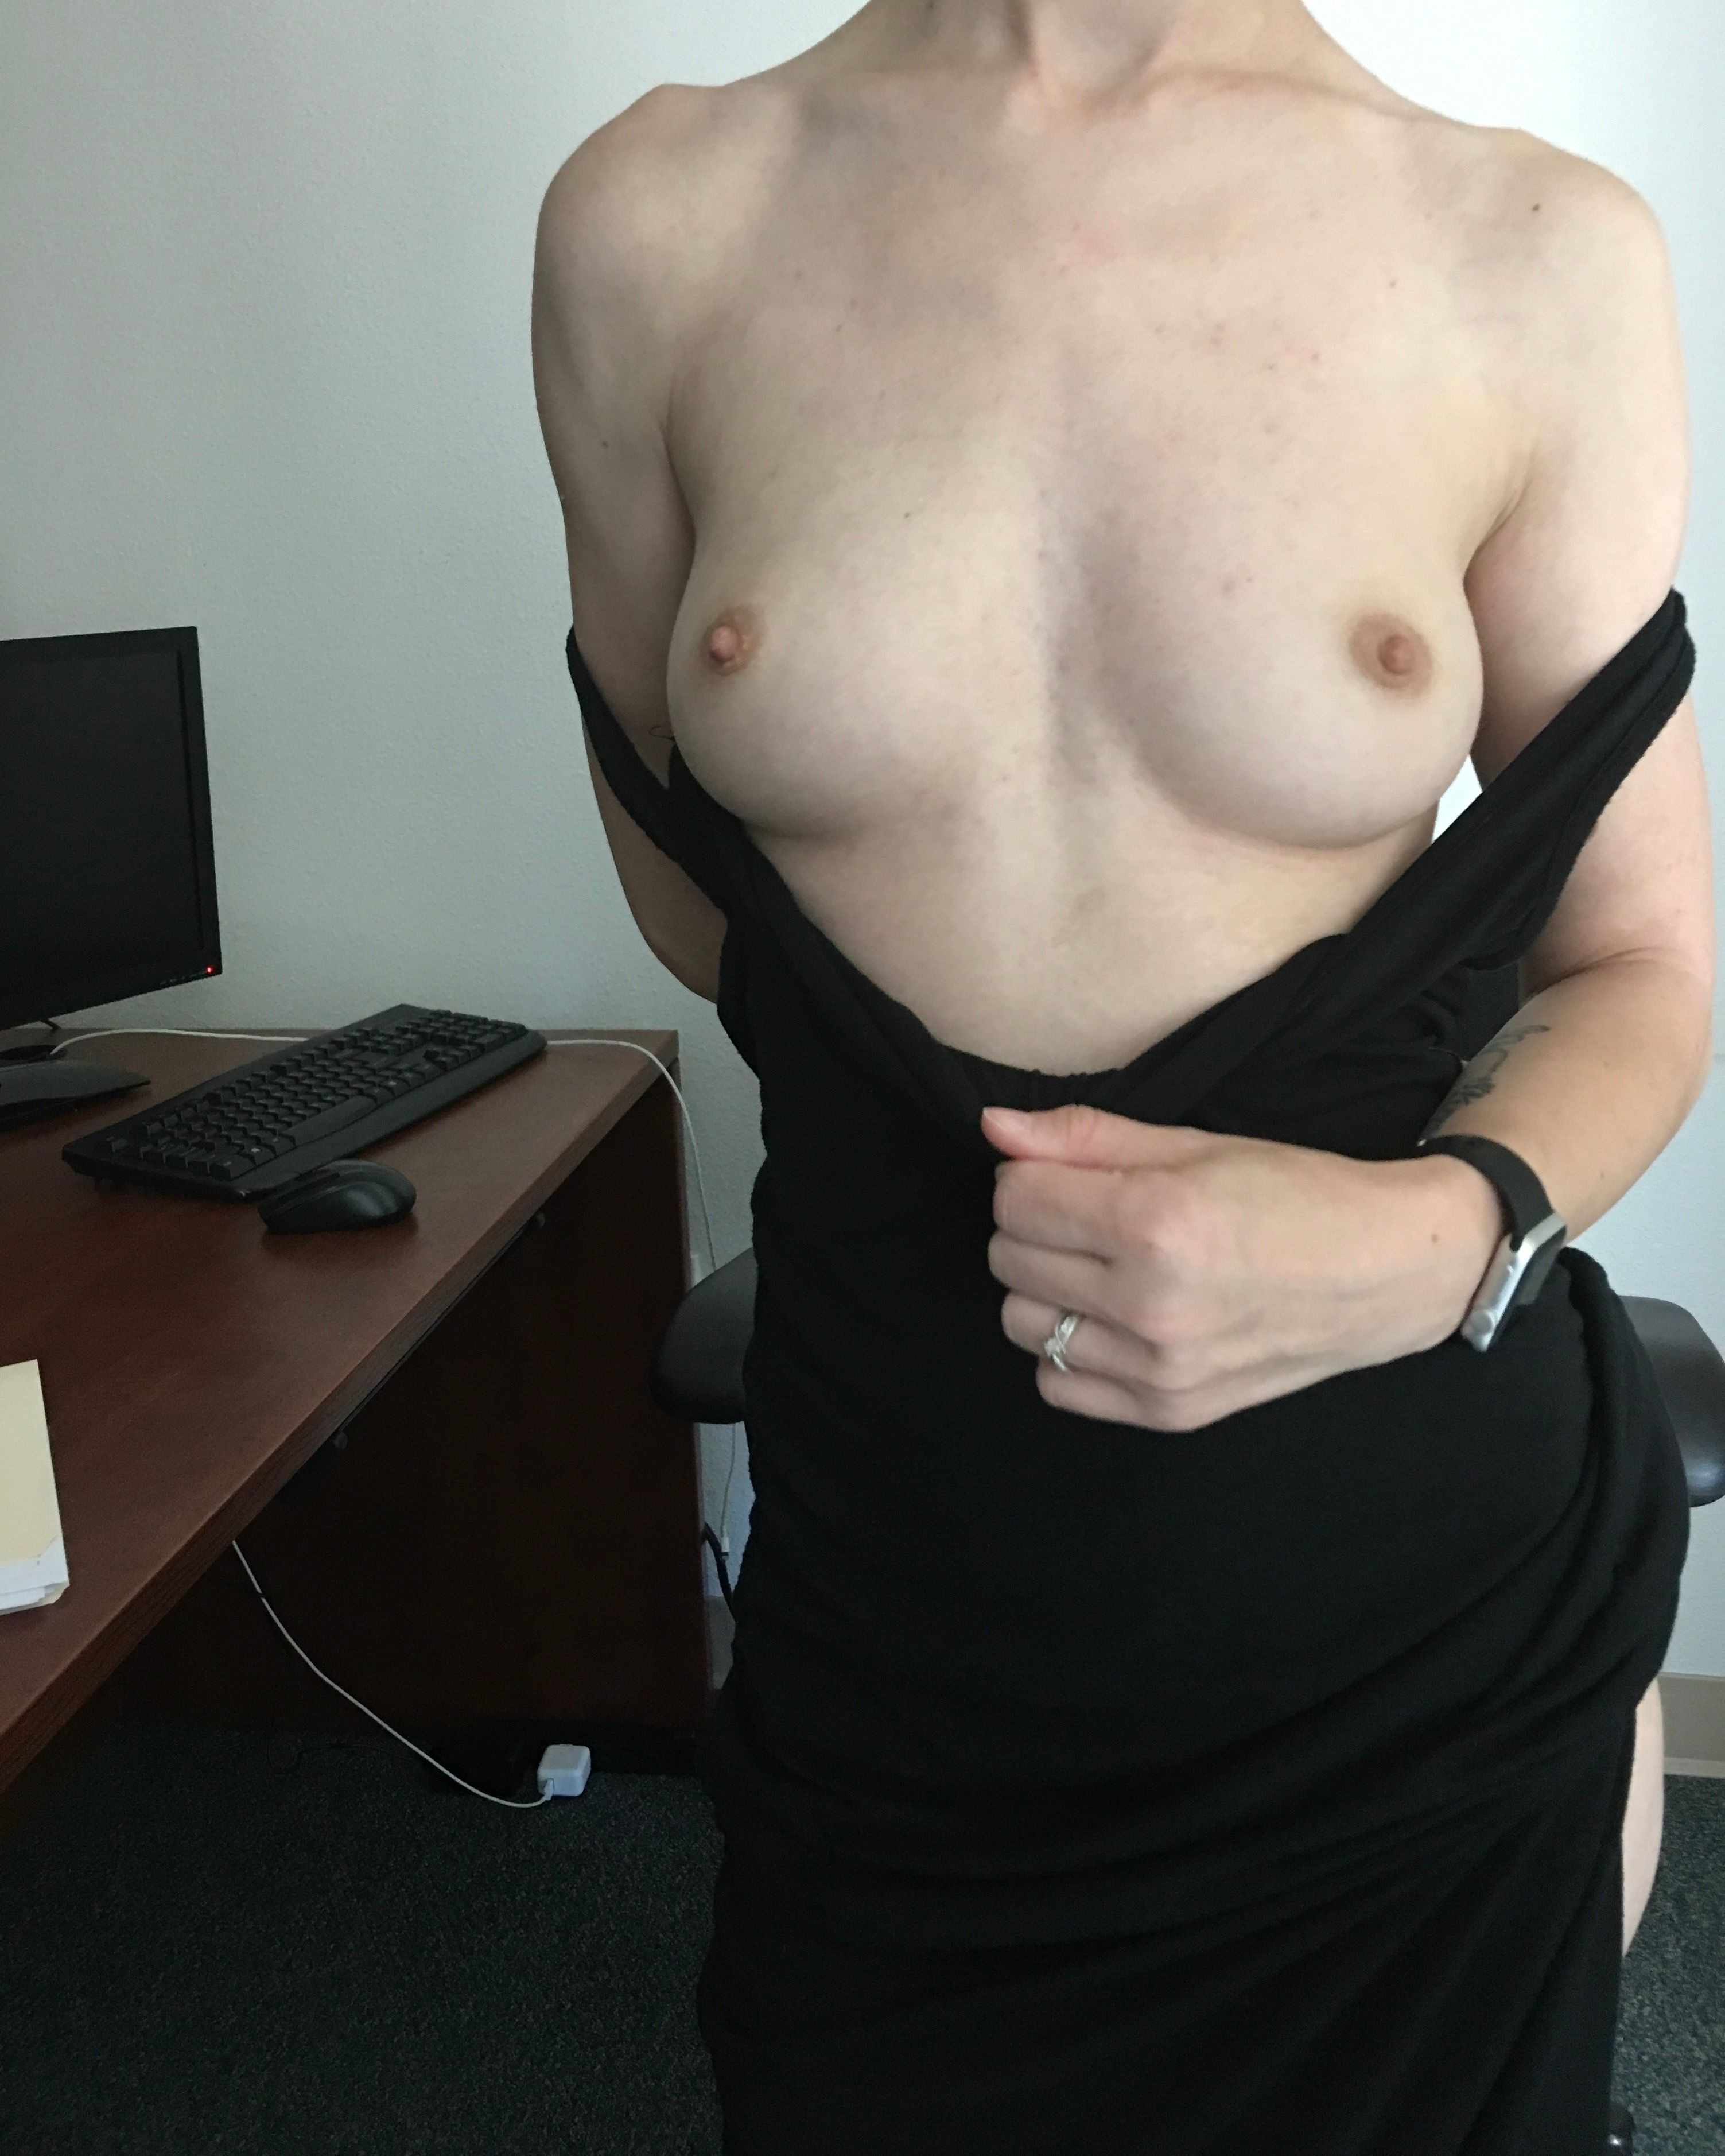 [Petite Amateurs] Please don't tell my boss [F]